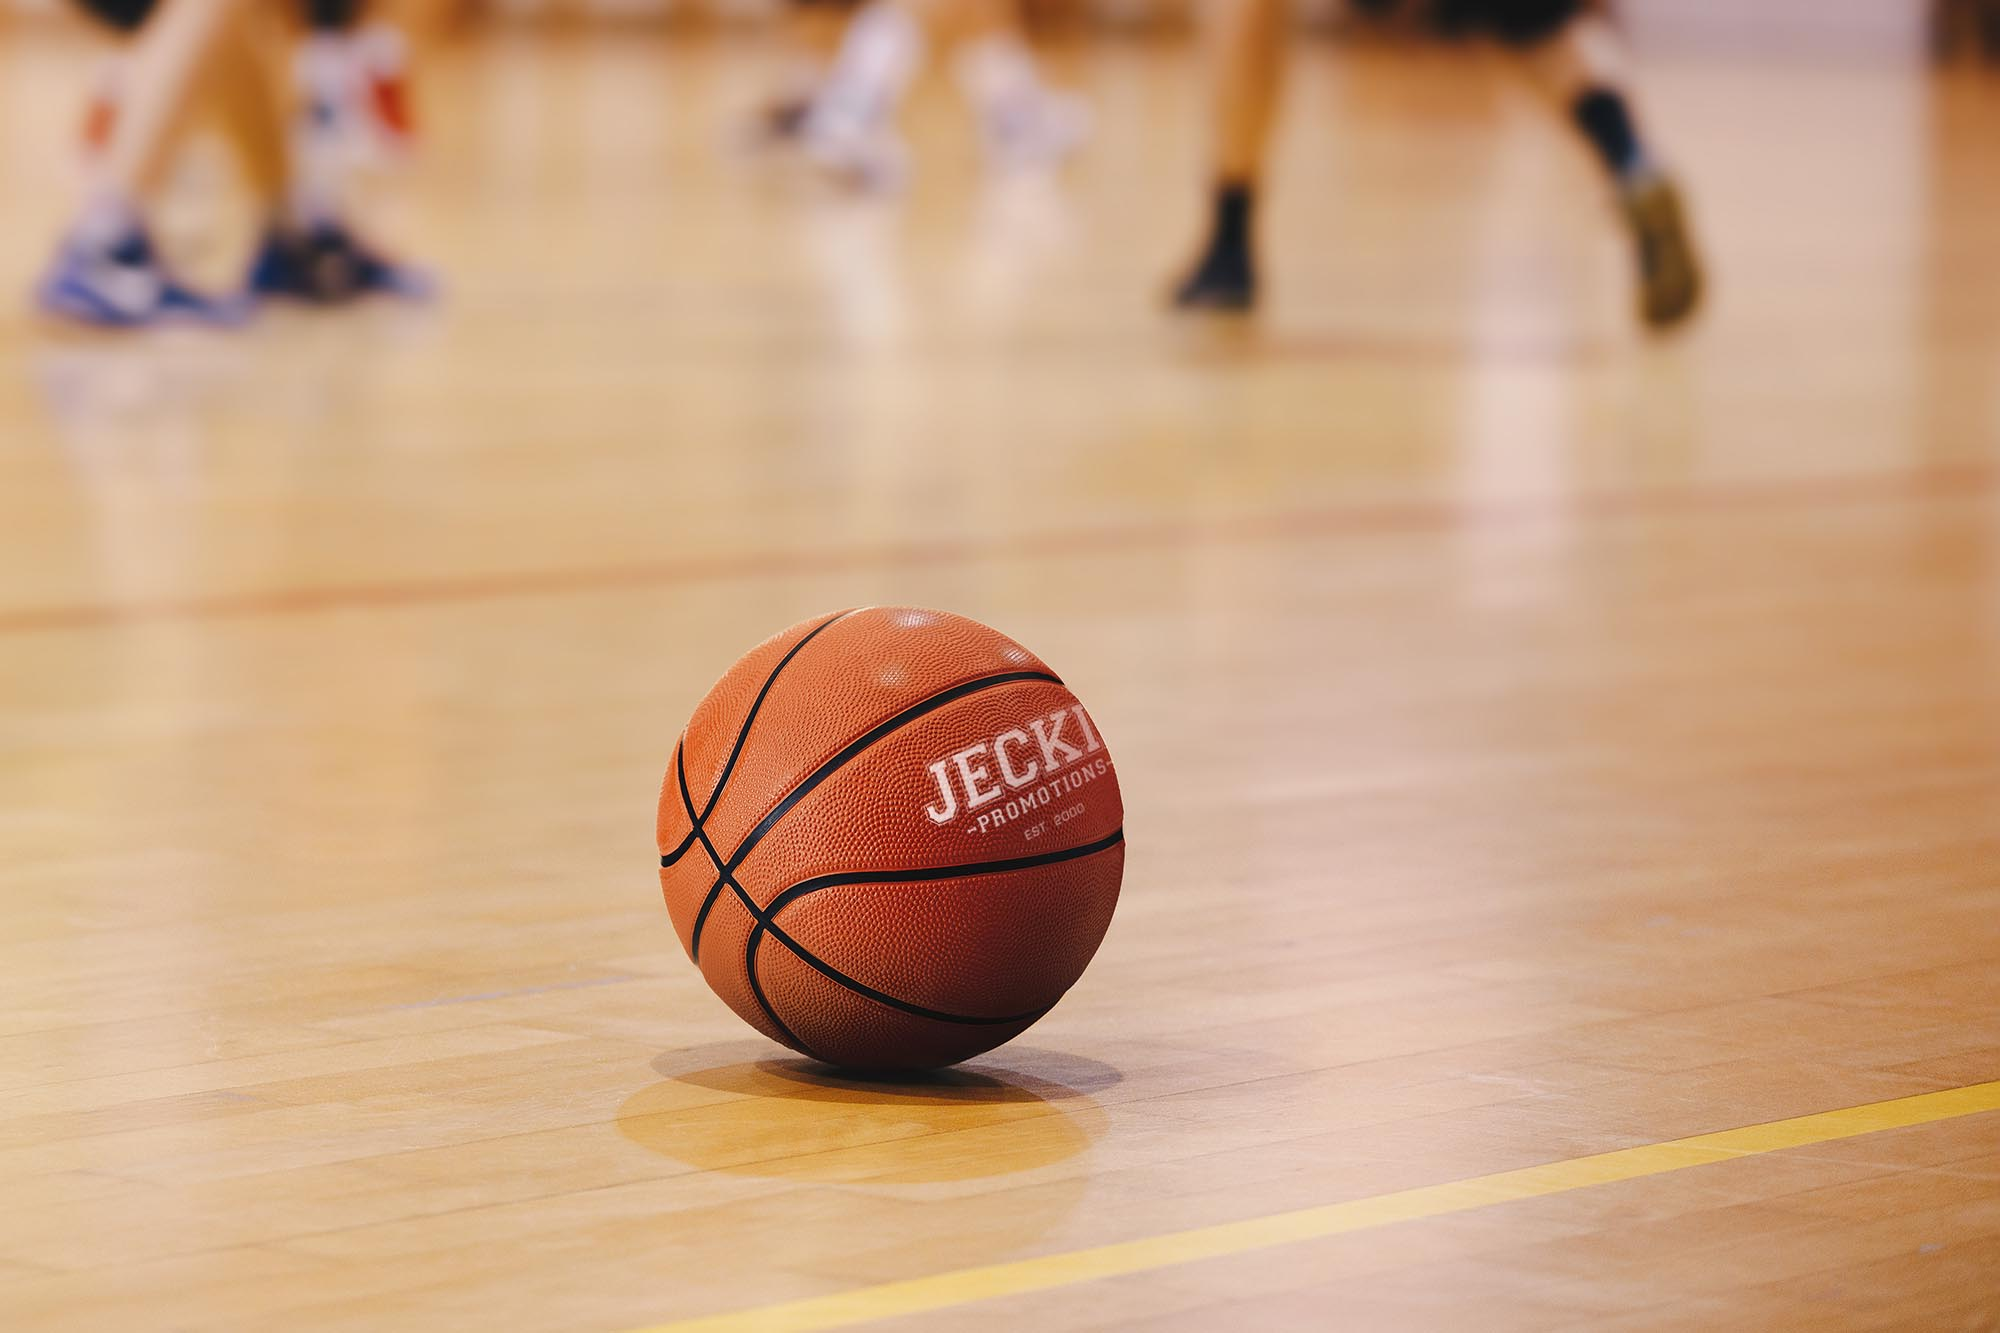 Basketball Training Game Background. Basketball on Wooden Court